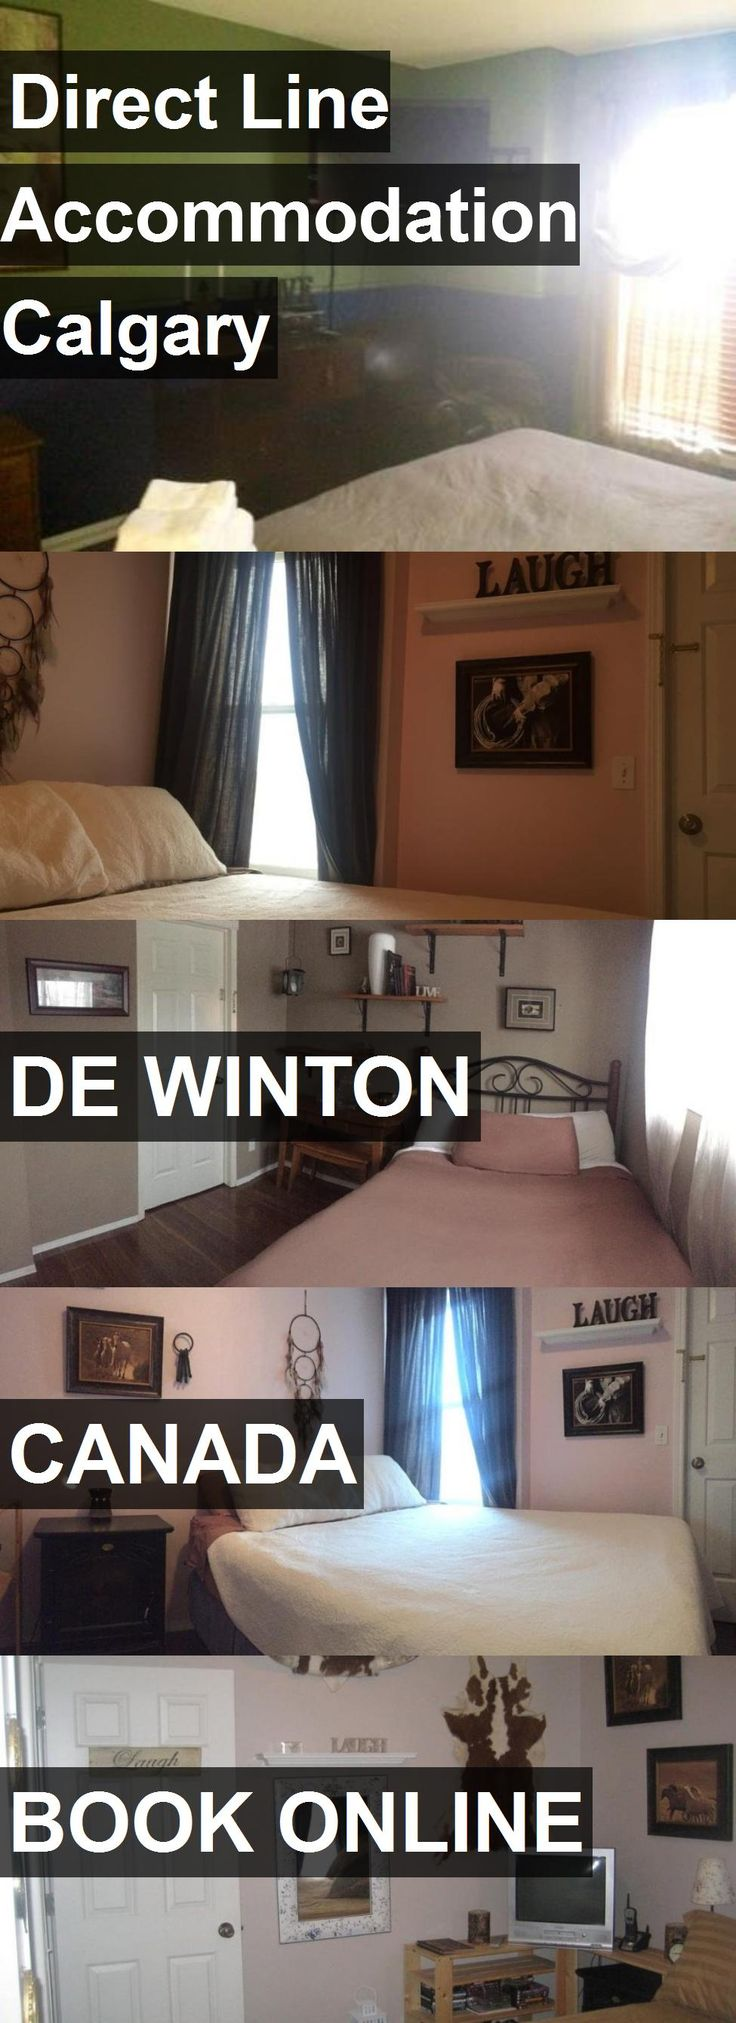 Hotel Direct Line Accommodation Calgary in De Winton, Canada. For more information, photos, reviews and best prices please follow the link. #Canada #DeWinton #DirectLineAccommodationCalgary #hotel #travel #vacation